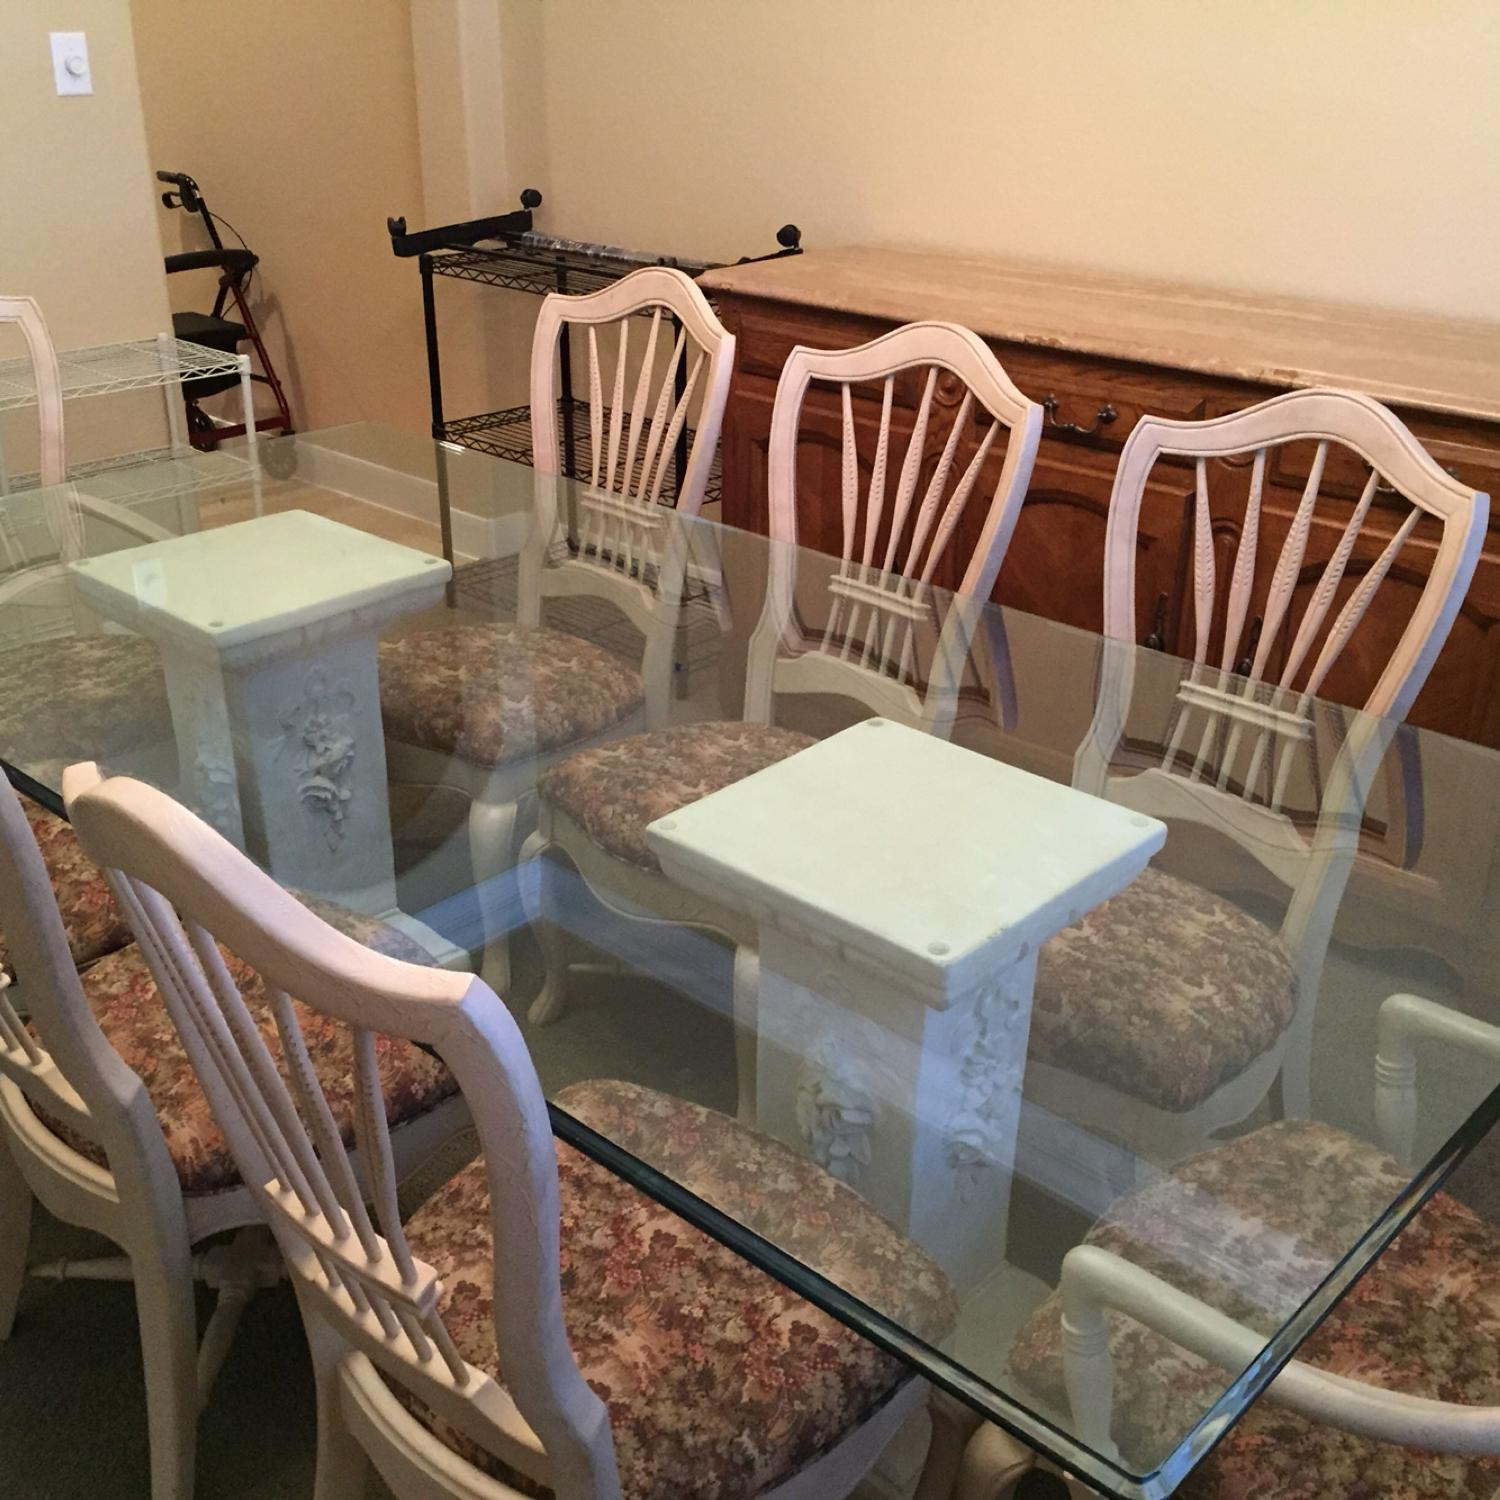 Best Price Decrease Formal Dining Table And Chairs Movers Required Cross Posted Other Houston Area Communities Craigslist For Sale In Katy Texas For 2021